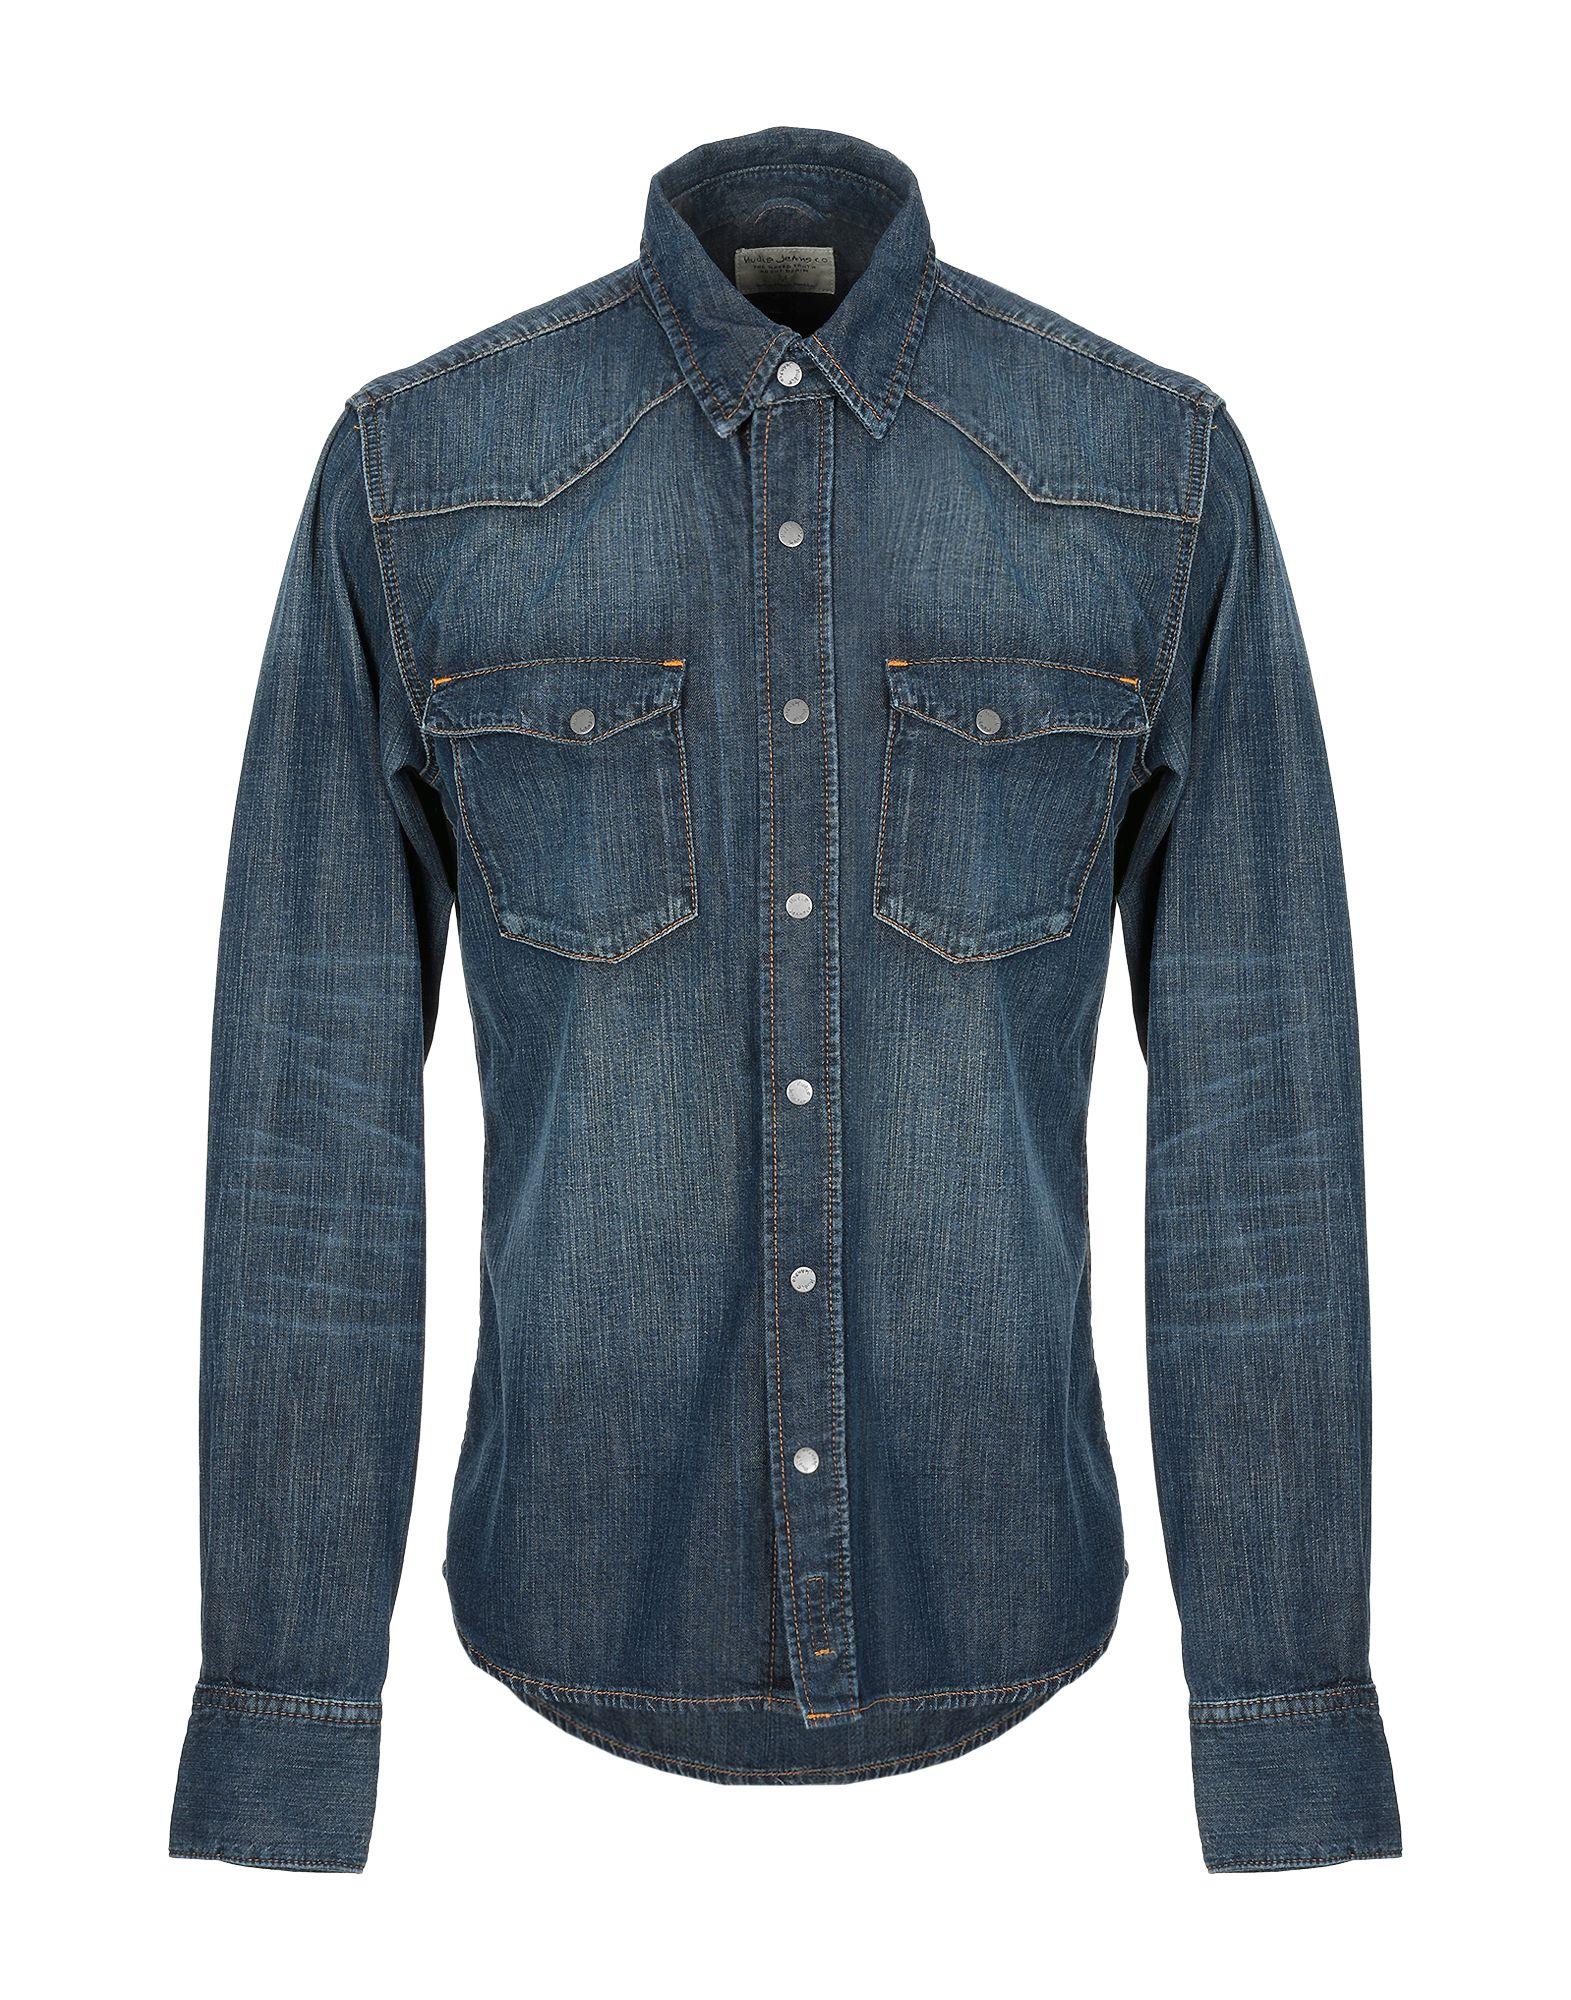 Nudie Jeans T-shirts Denim shirt